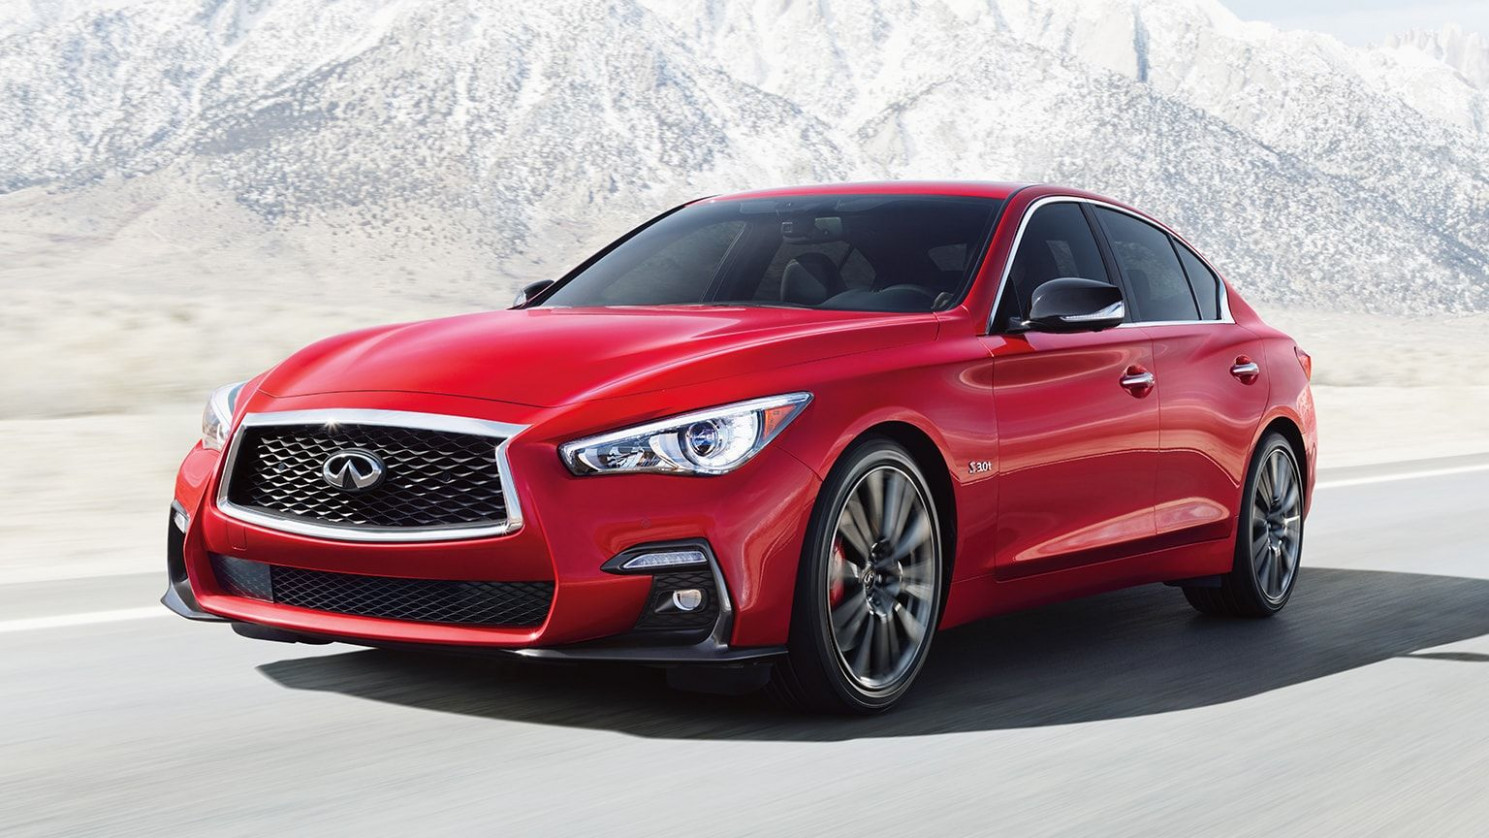 8 Infiniti Q8 Review, Pricing, and Specs - 2020 infiniti vehicles